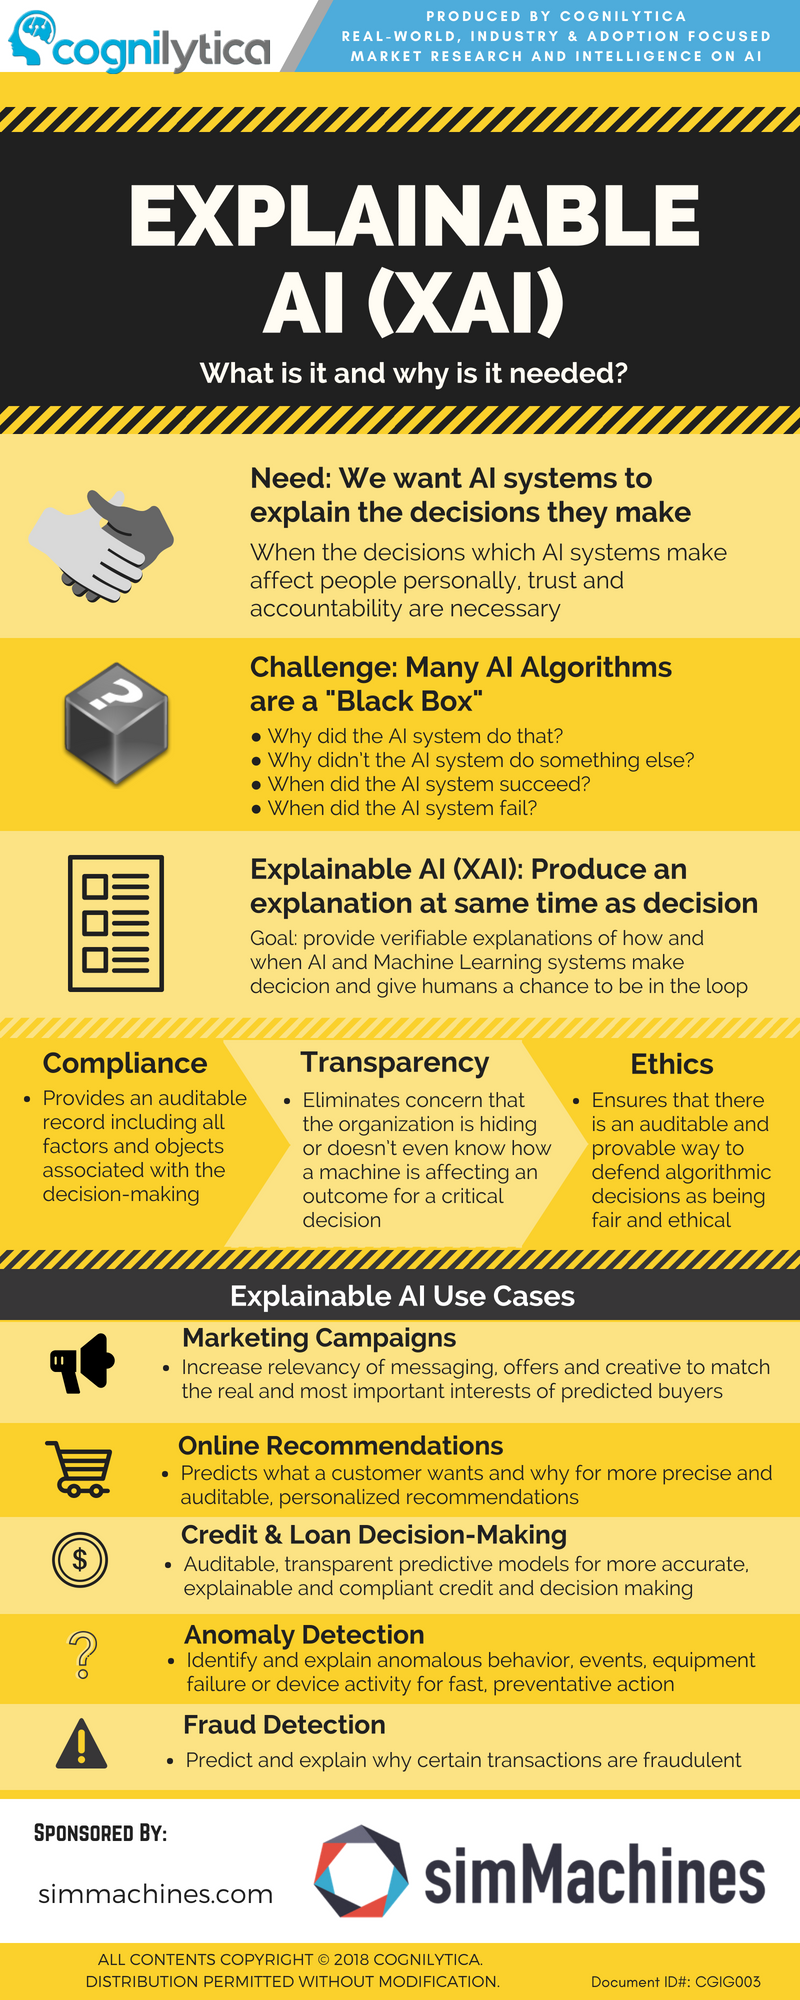 Explainable-AI-XAI-infographic-plaza